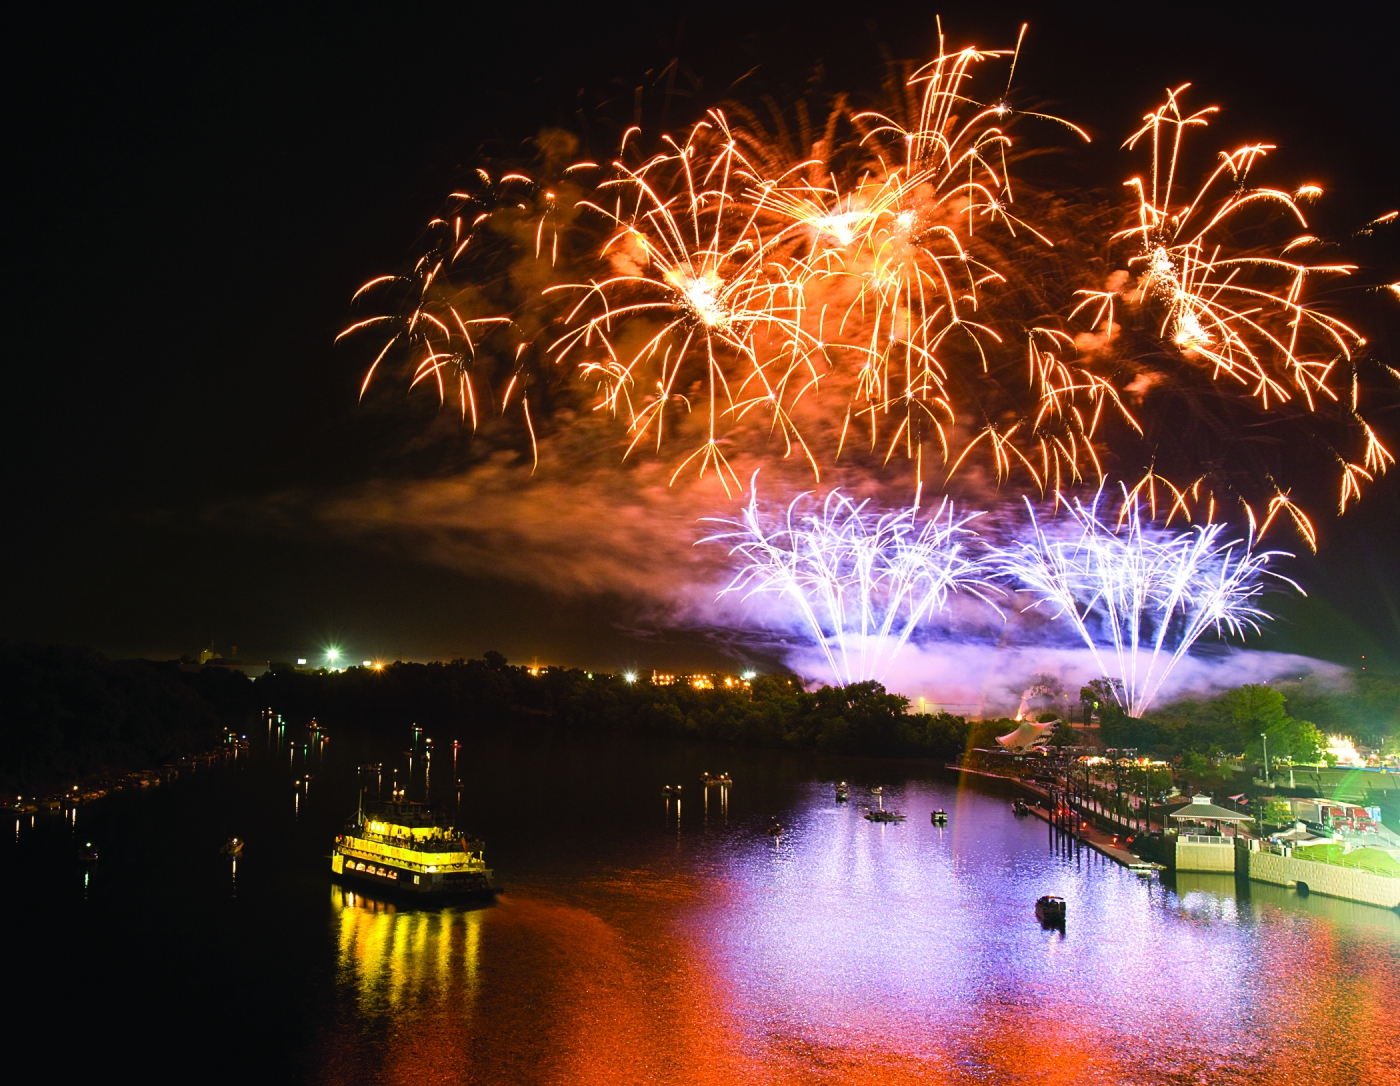 Fireworks light up the sky along the Alabama River beside one of America's most historic cities.